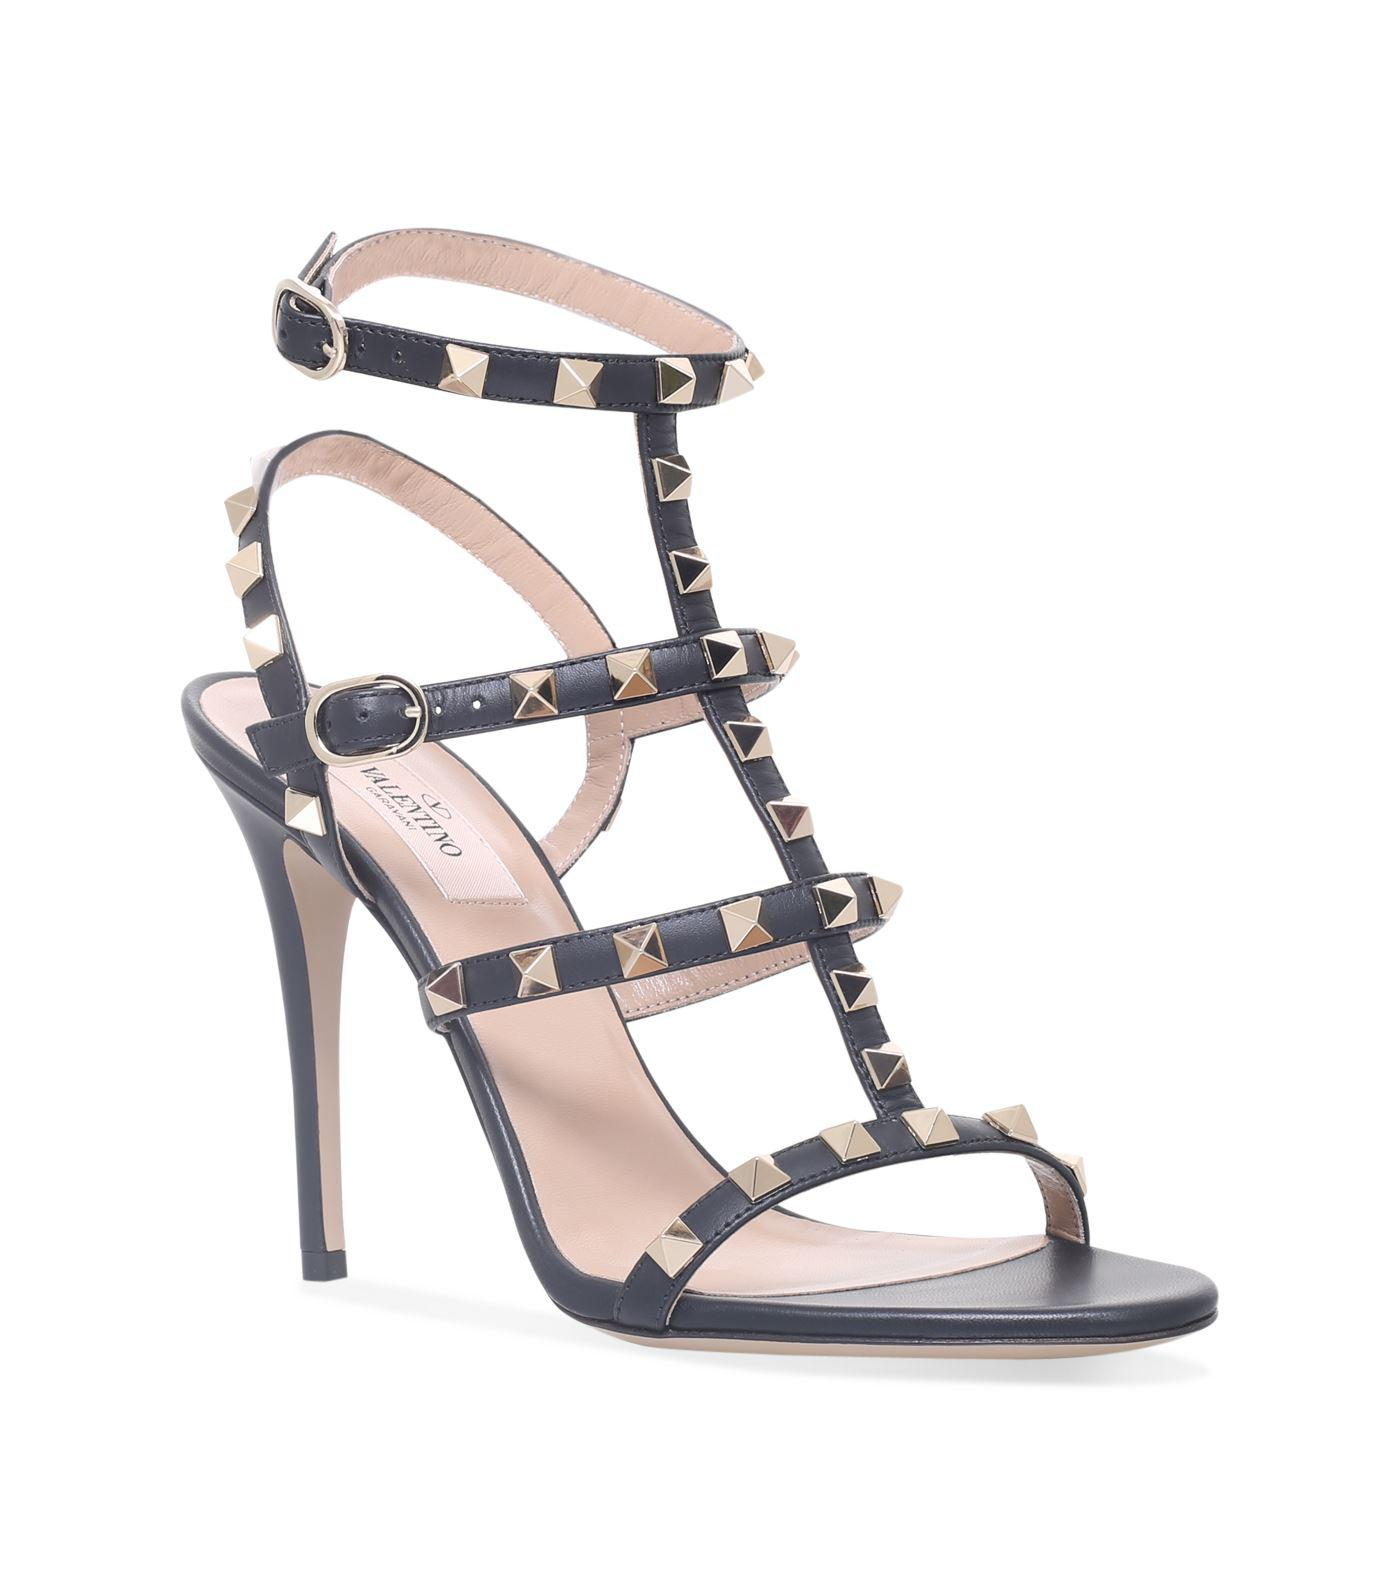 bdd9033db35 Lyst - Valentino Leather Rockstud Sandals 105 in Black